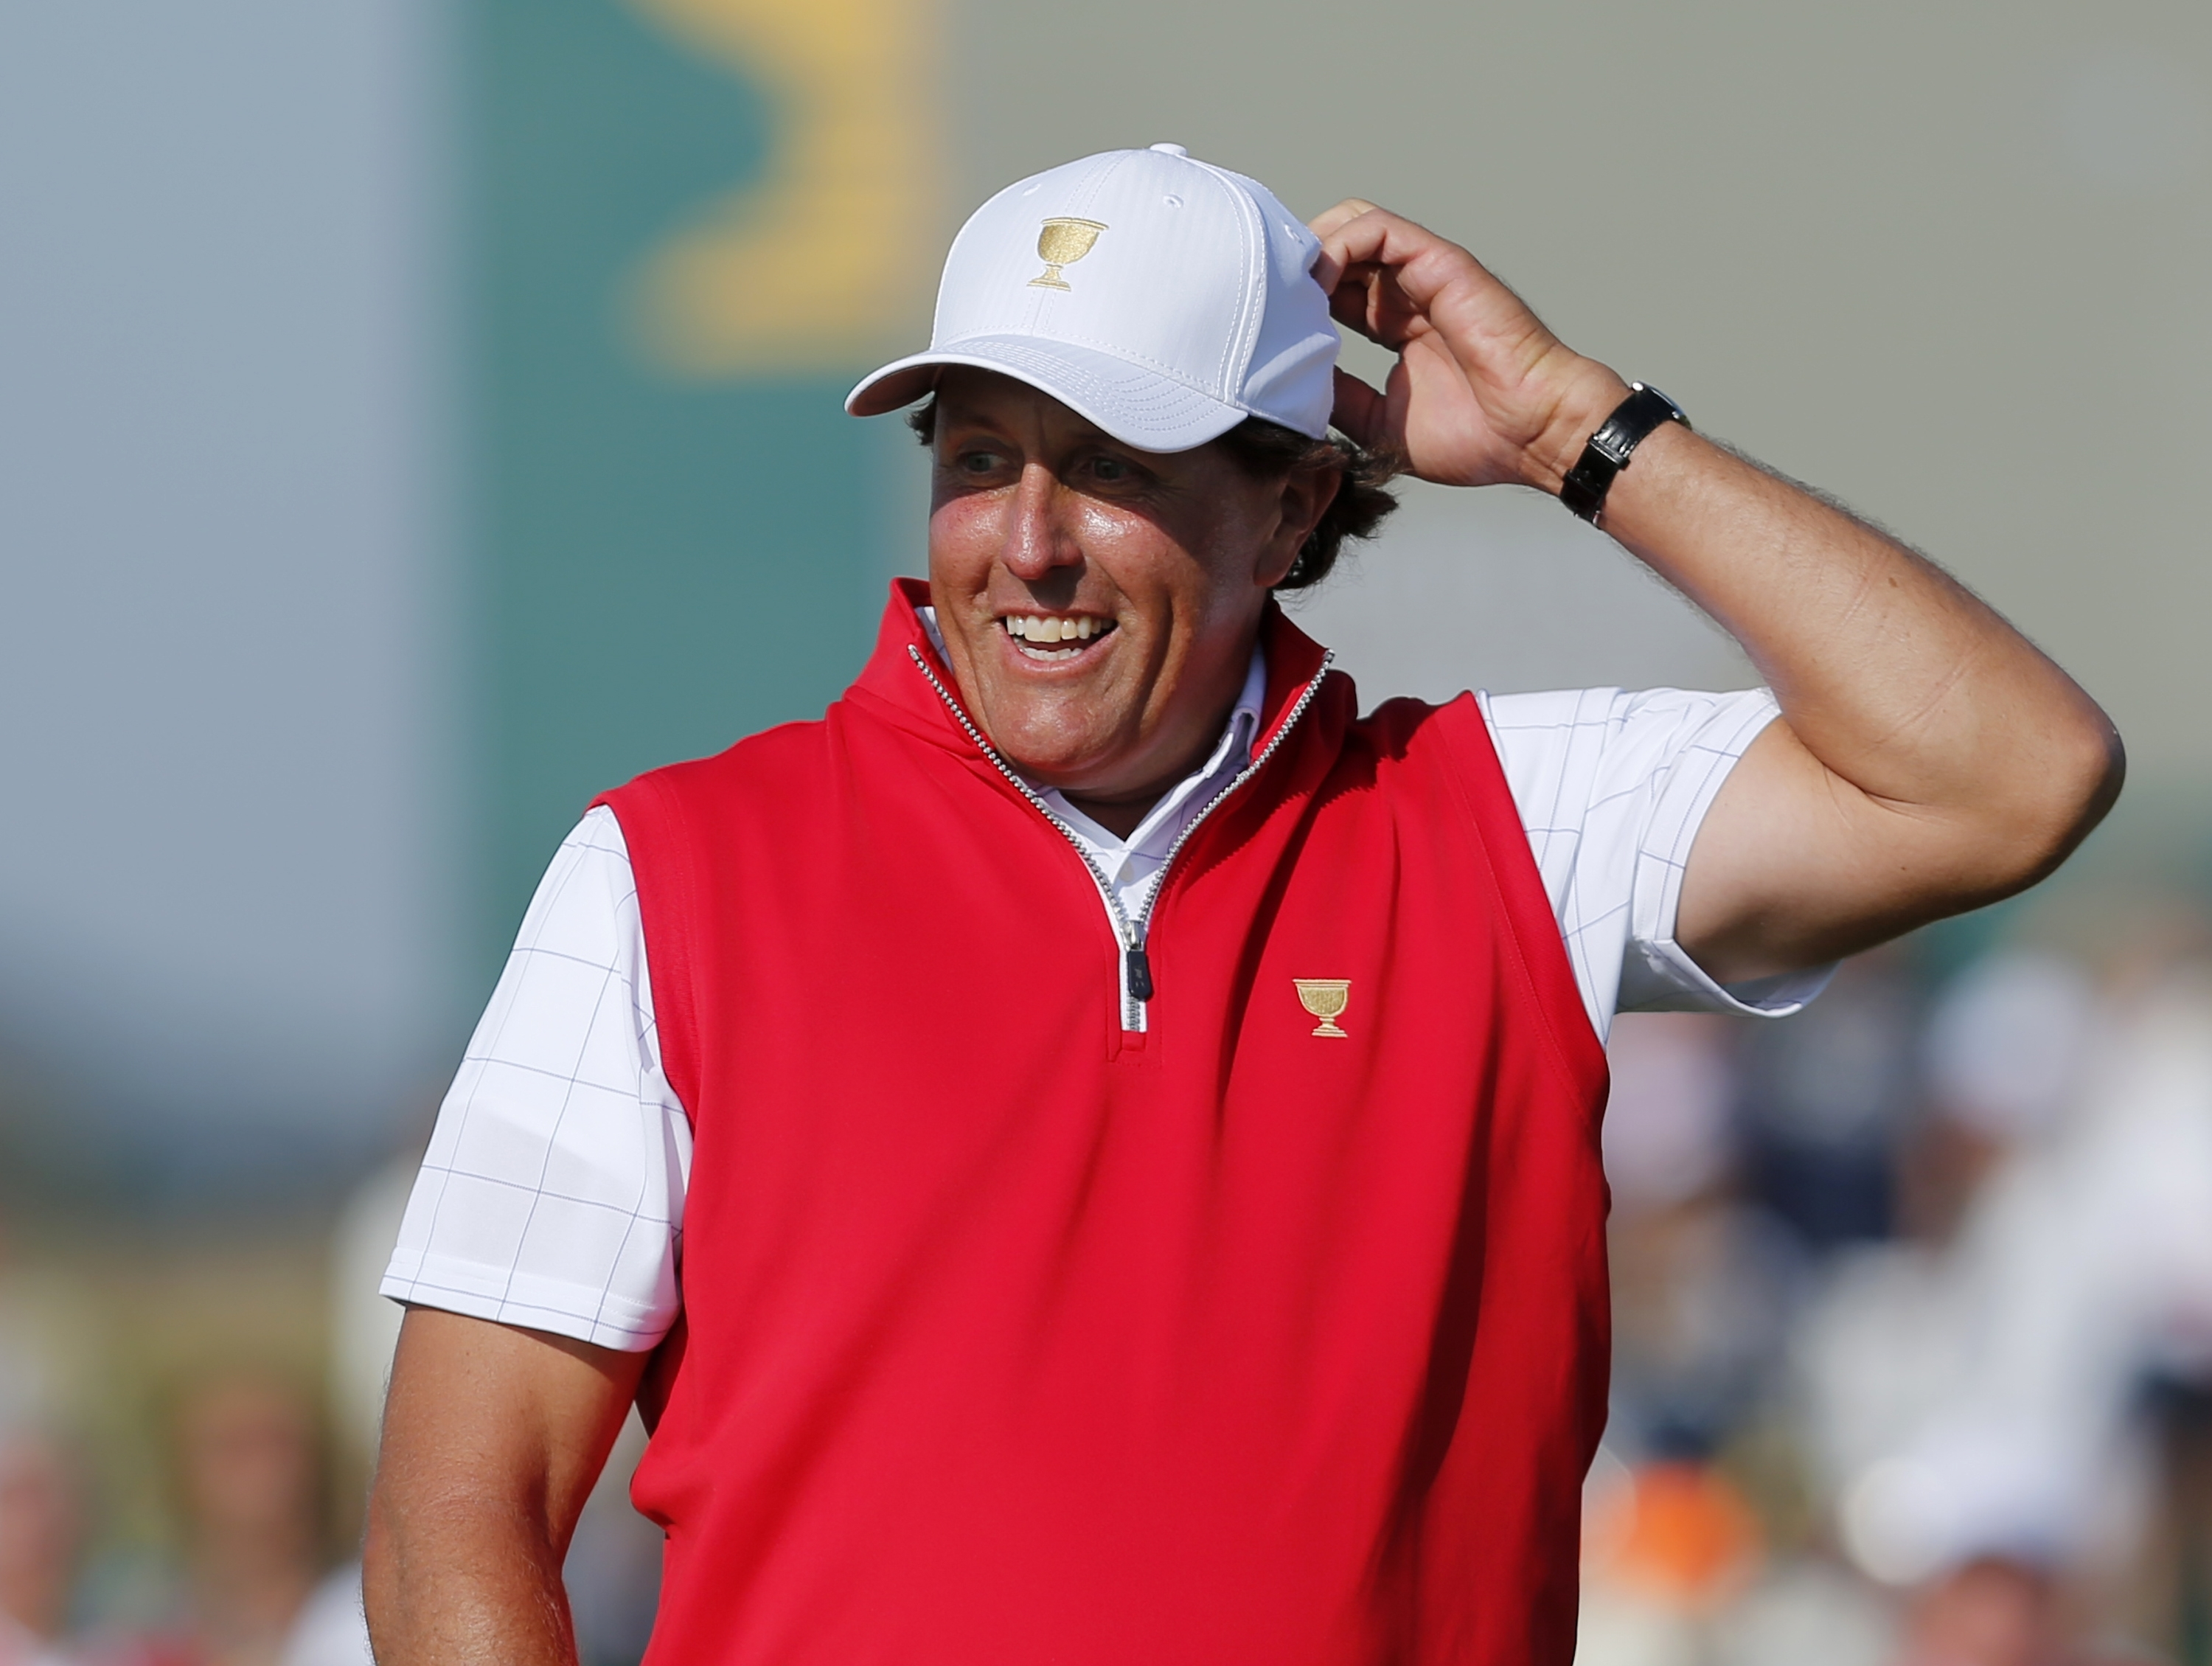 File-This Oct. 8, 2015, file photo shows United States' Phil Mickelson reacting to his putt on the 17th green during his foursome match at the Presidents Cup golf tournament at the Jack Nicklaus Golf Club Korea, in Incheon, South Korea. Mickelson  was a c